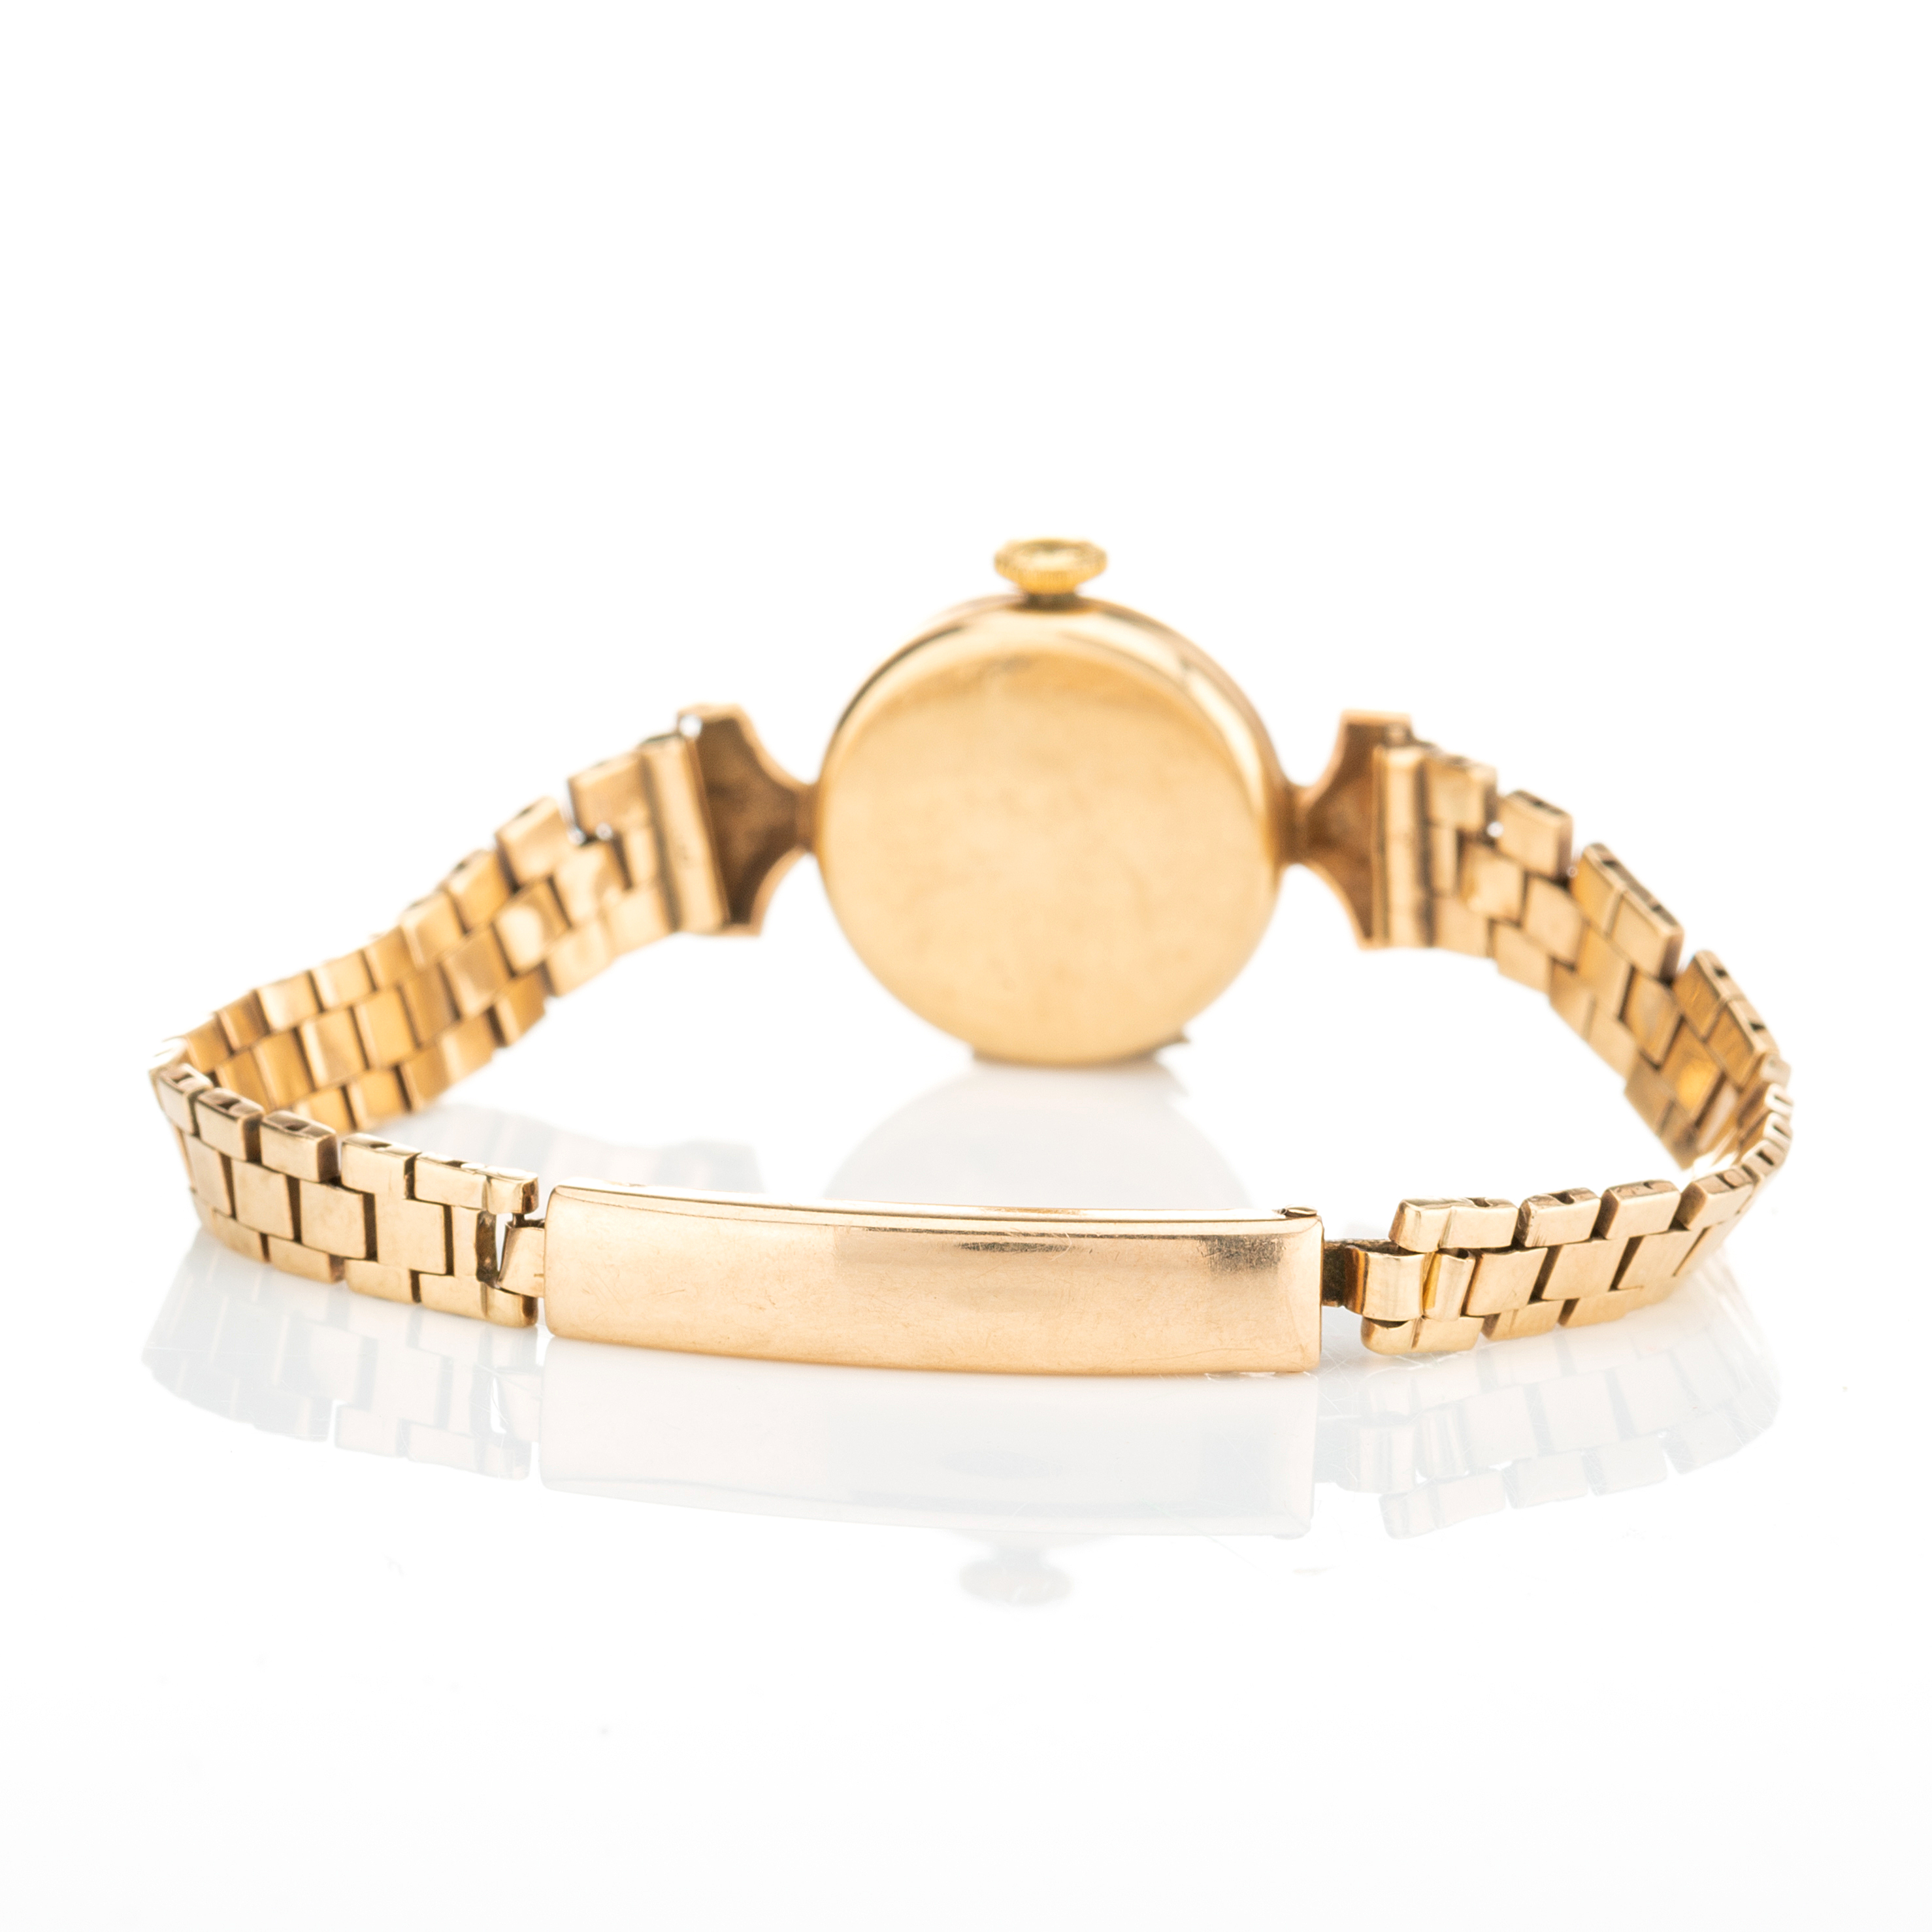 Longines, a mid 20th century 9ct gold bracelet watch - Image 3 of 3